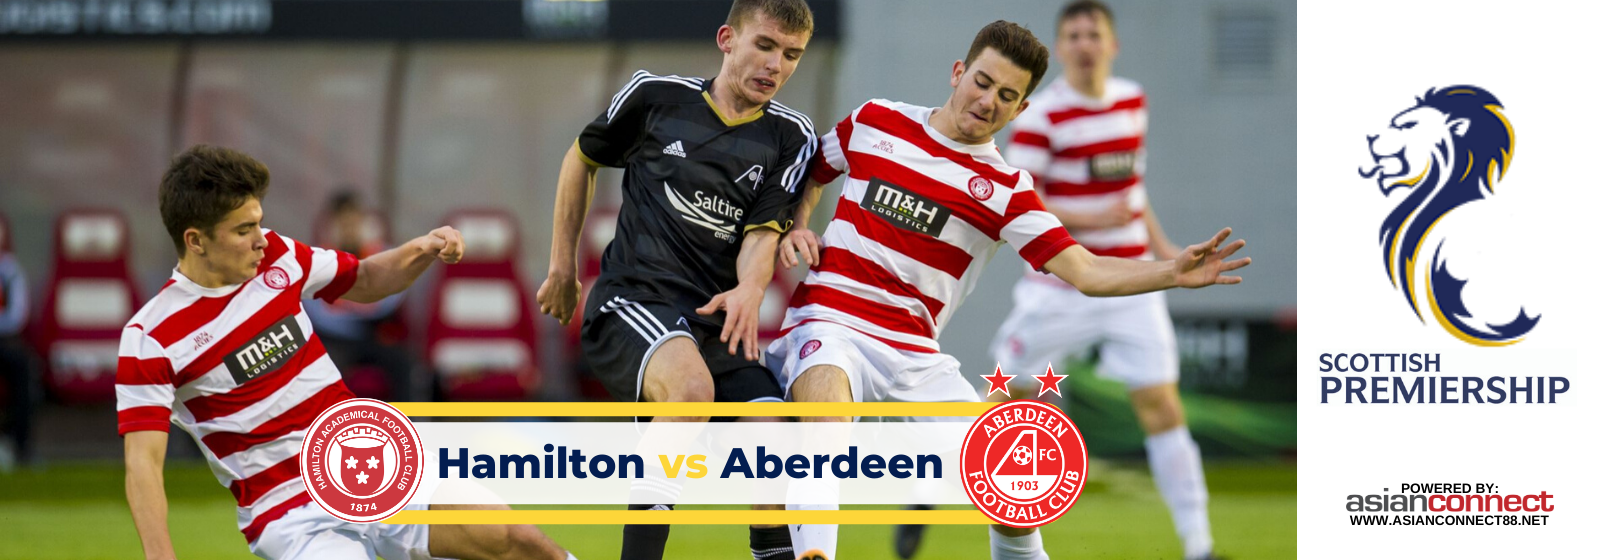 Asianconnect: Hamilton vs Aberdeen Odds for February 11, 2020